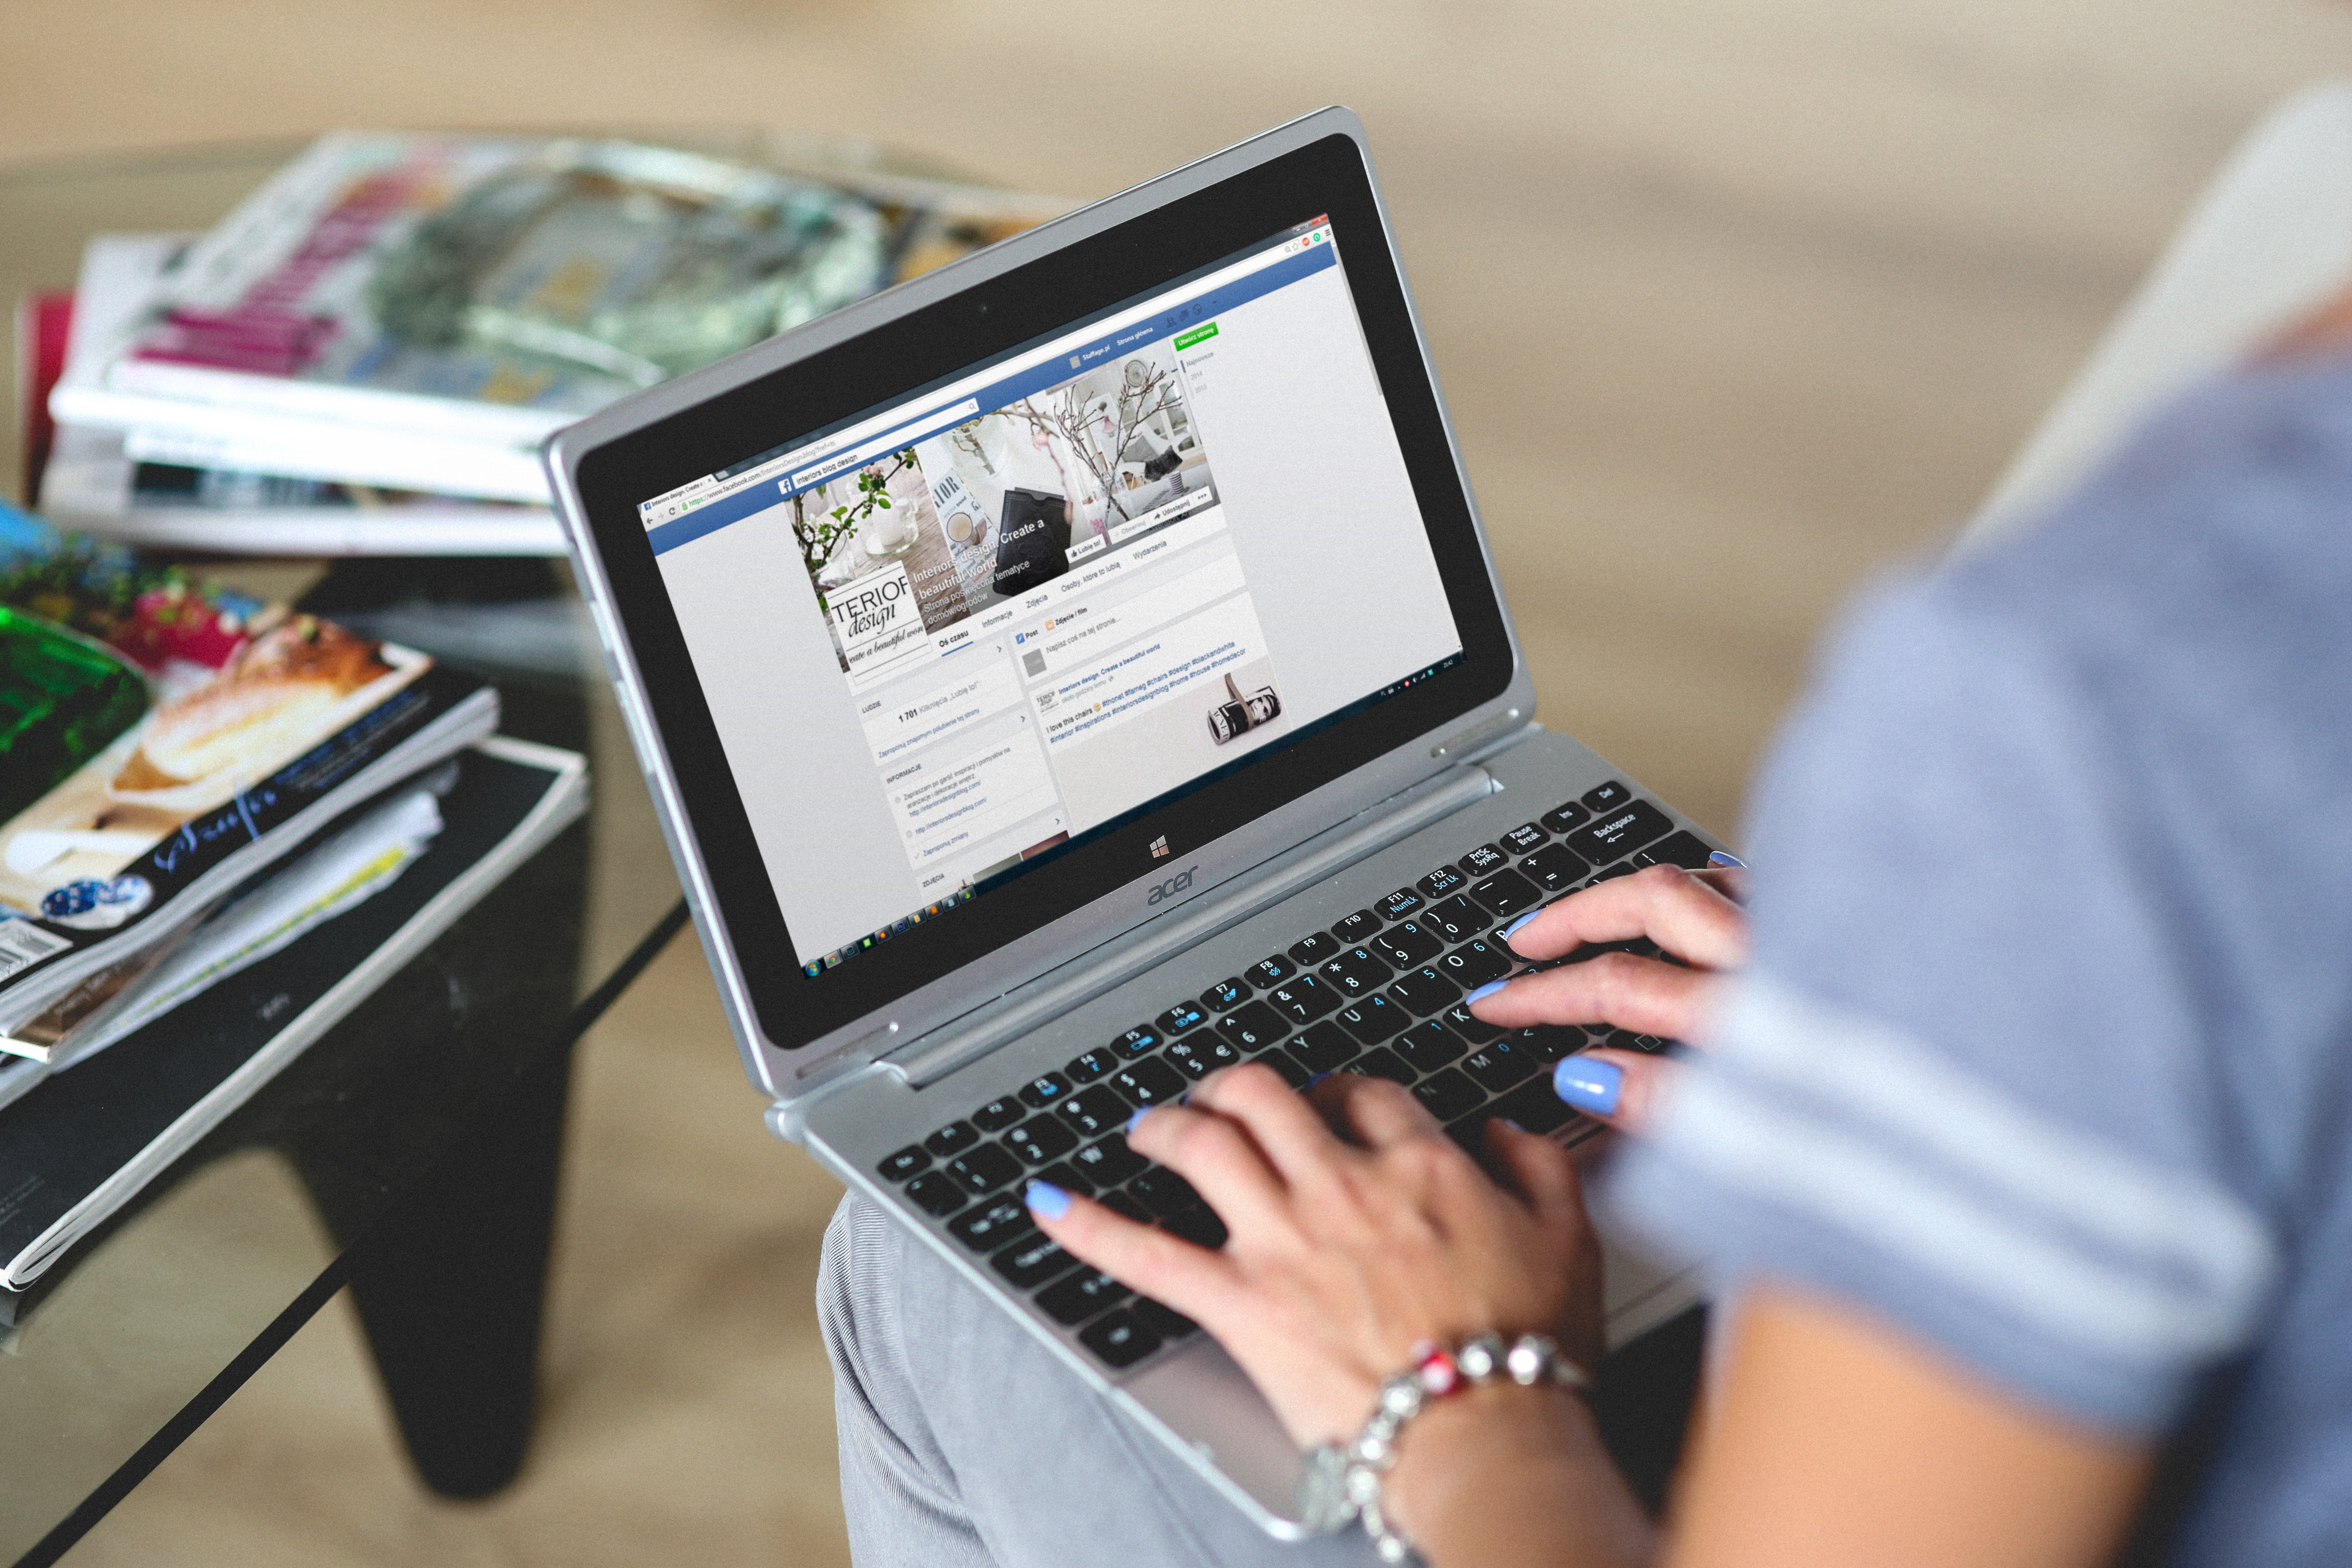 a person searching on Facebook on her laptop